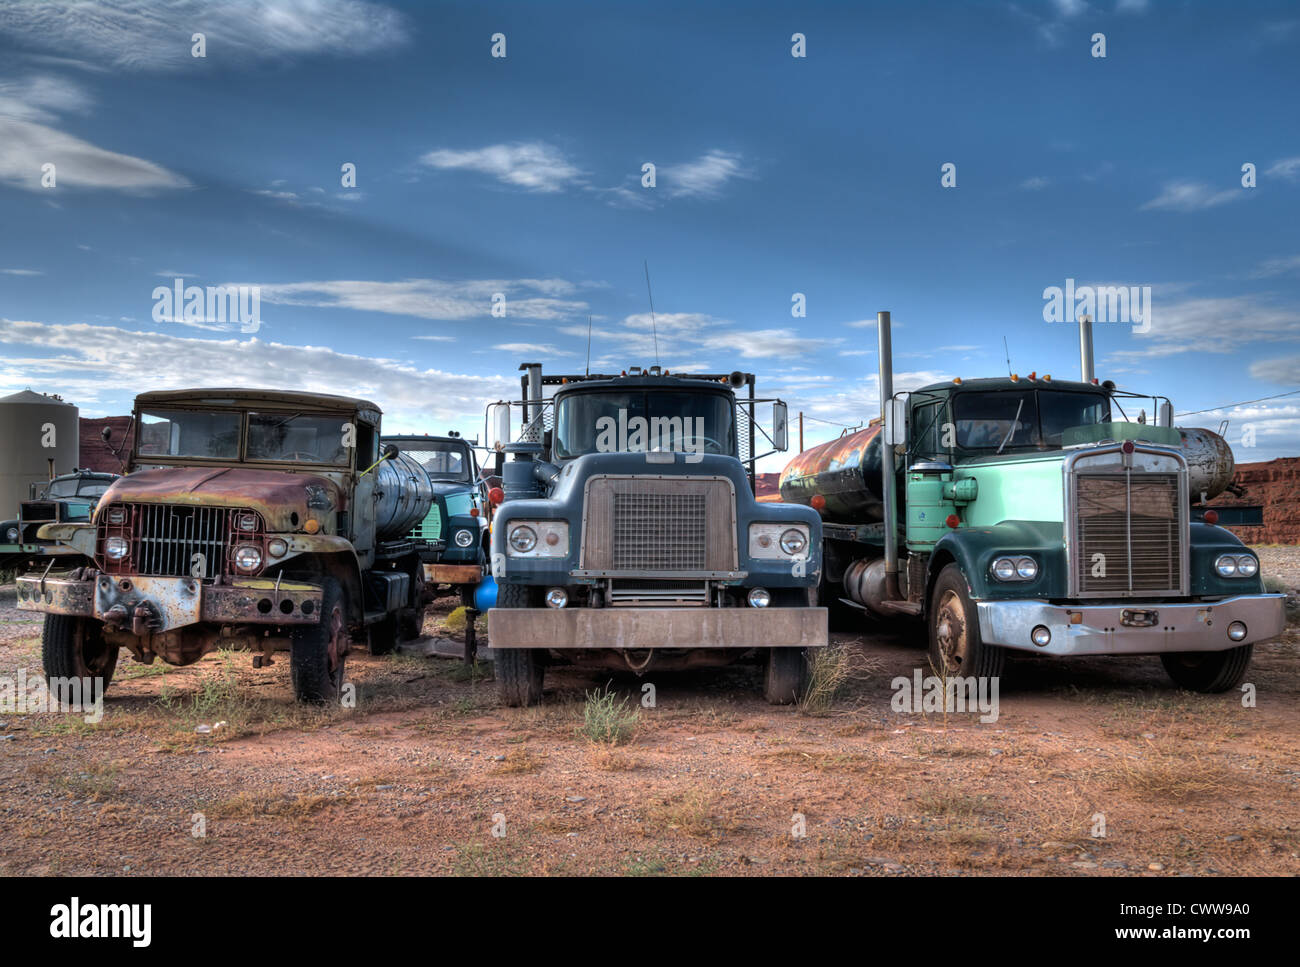 Junkyard with three trucks standing in the foreground - Stock Image